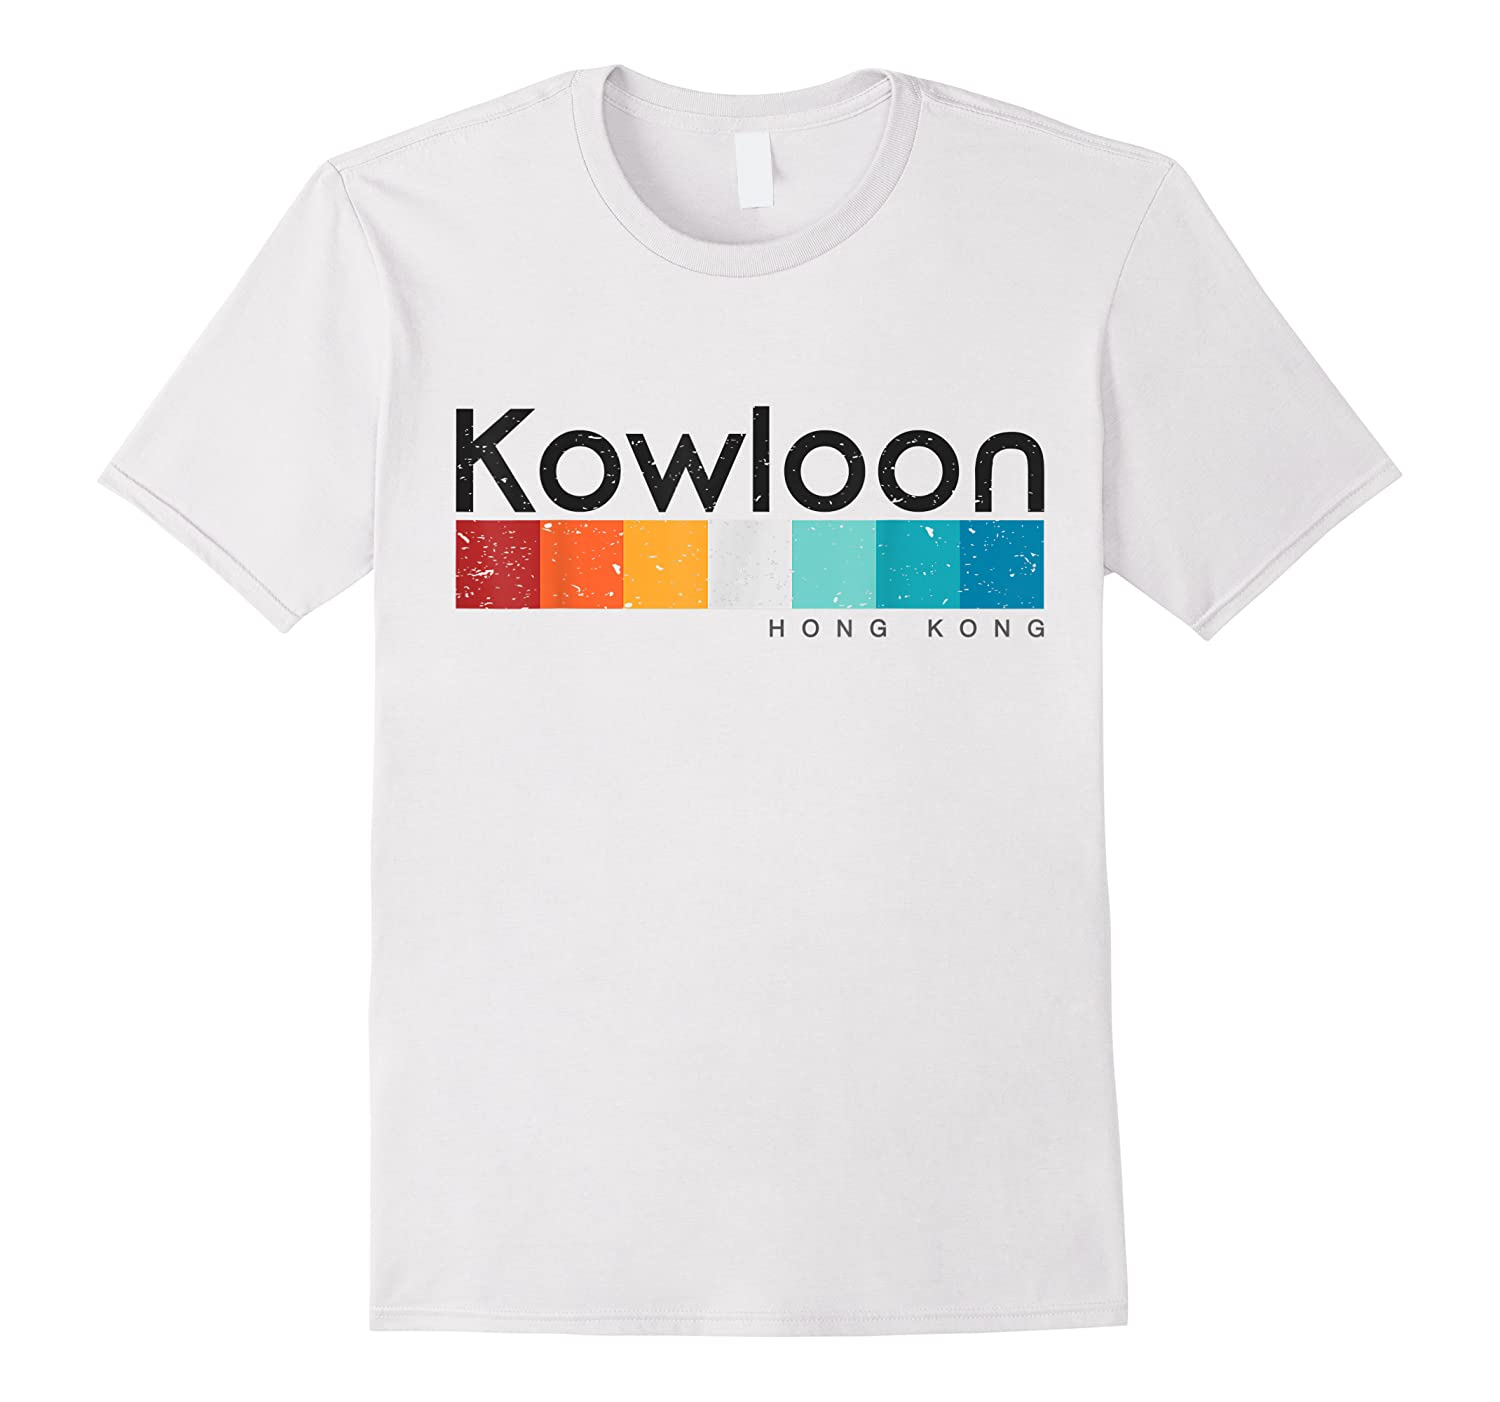 Kowloon Hong Kong Retro Style Vintage Design Shirts